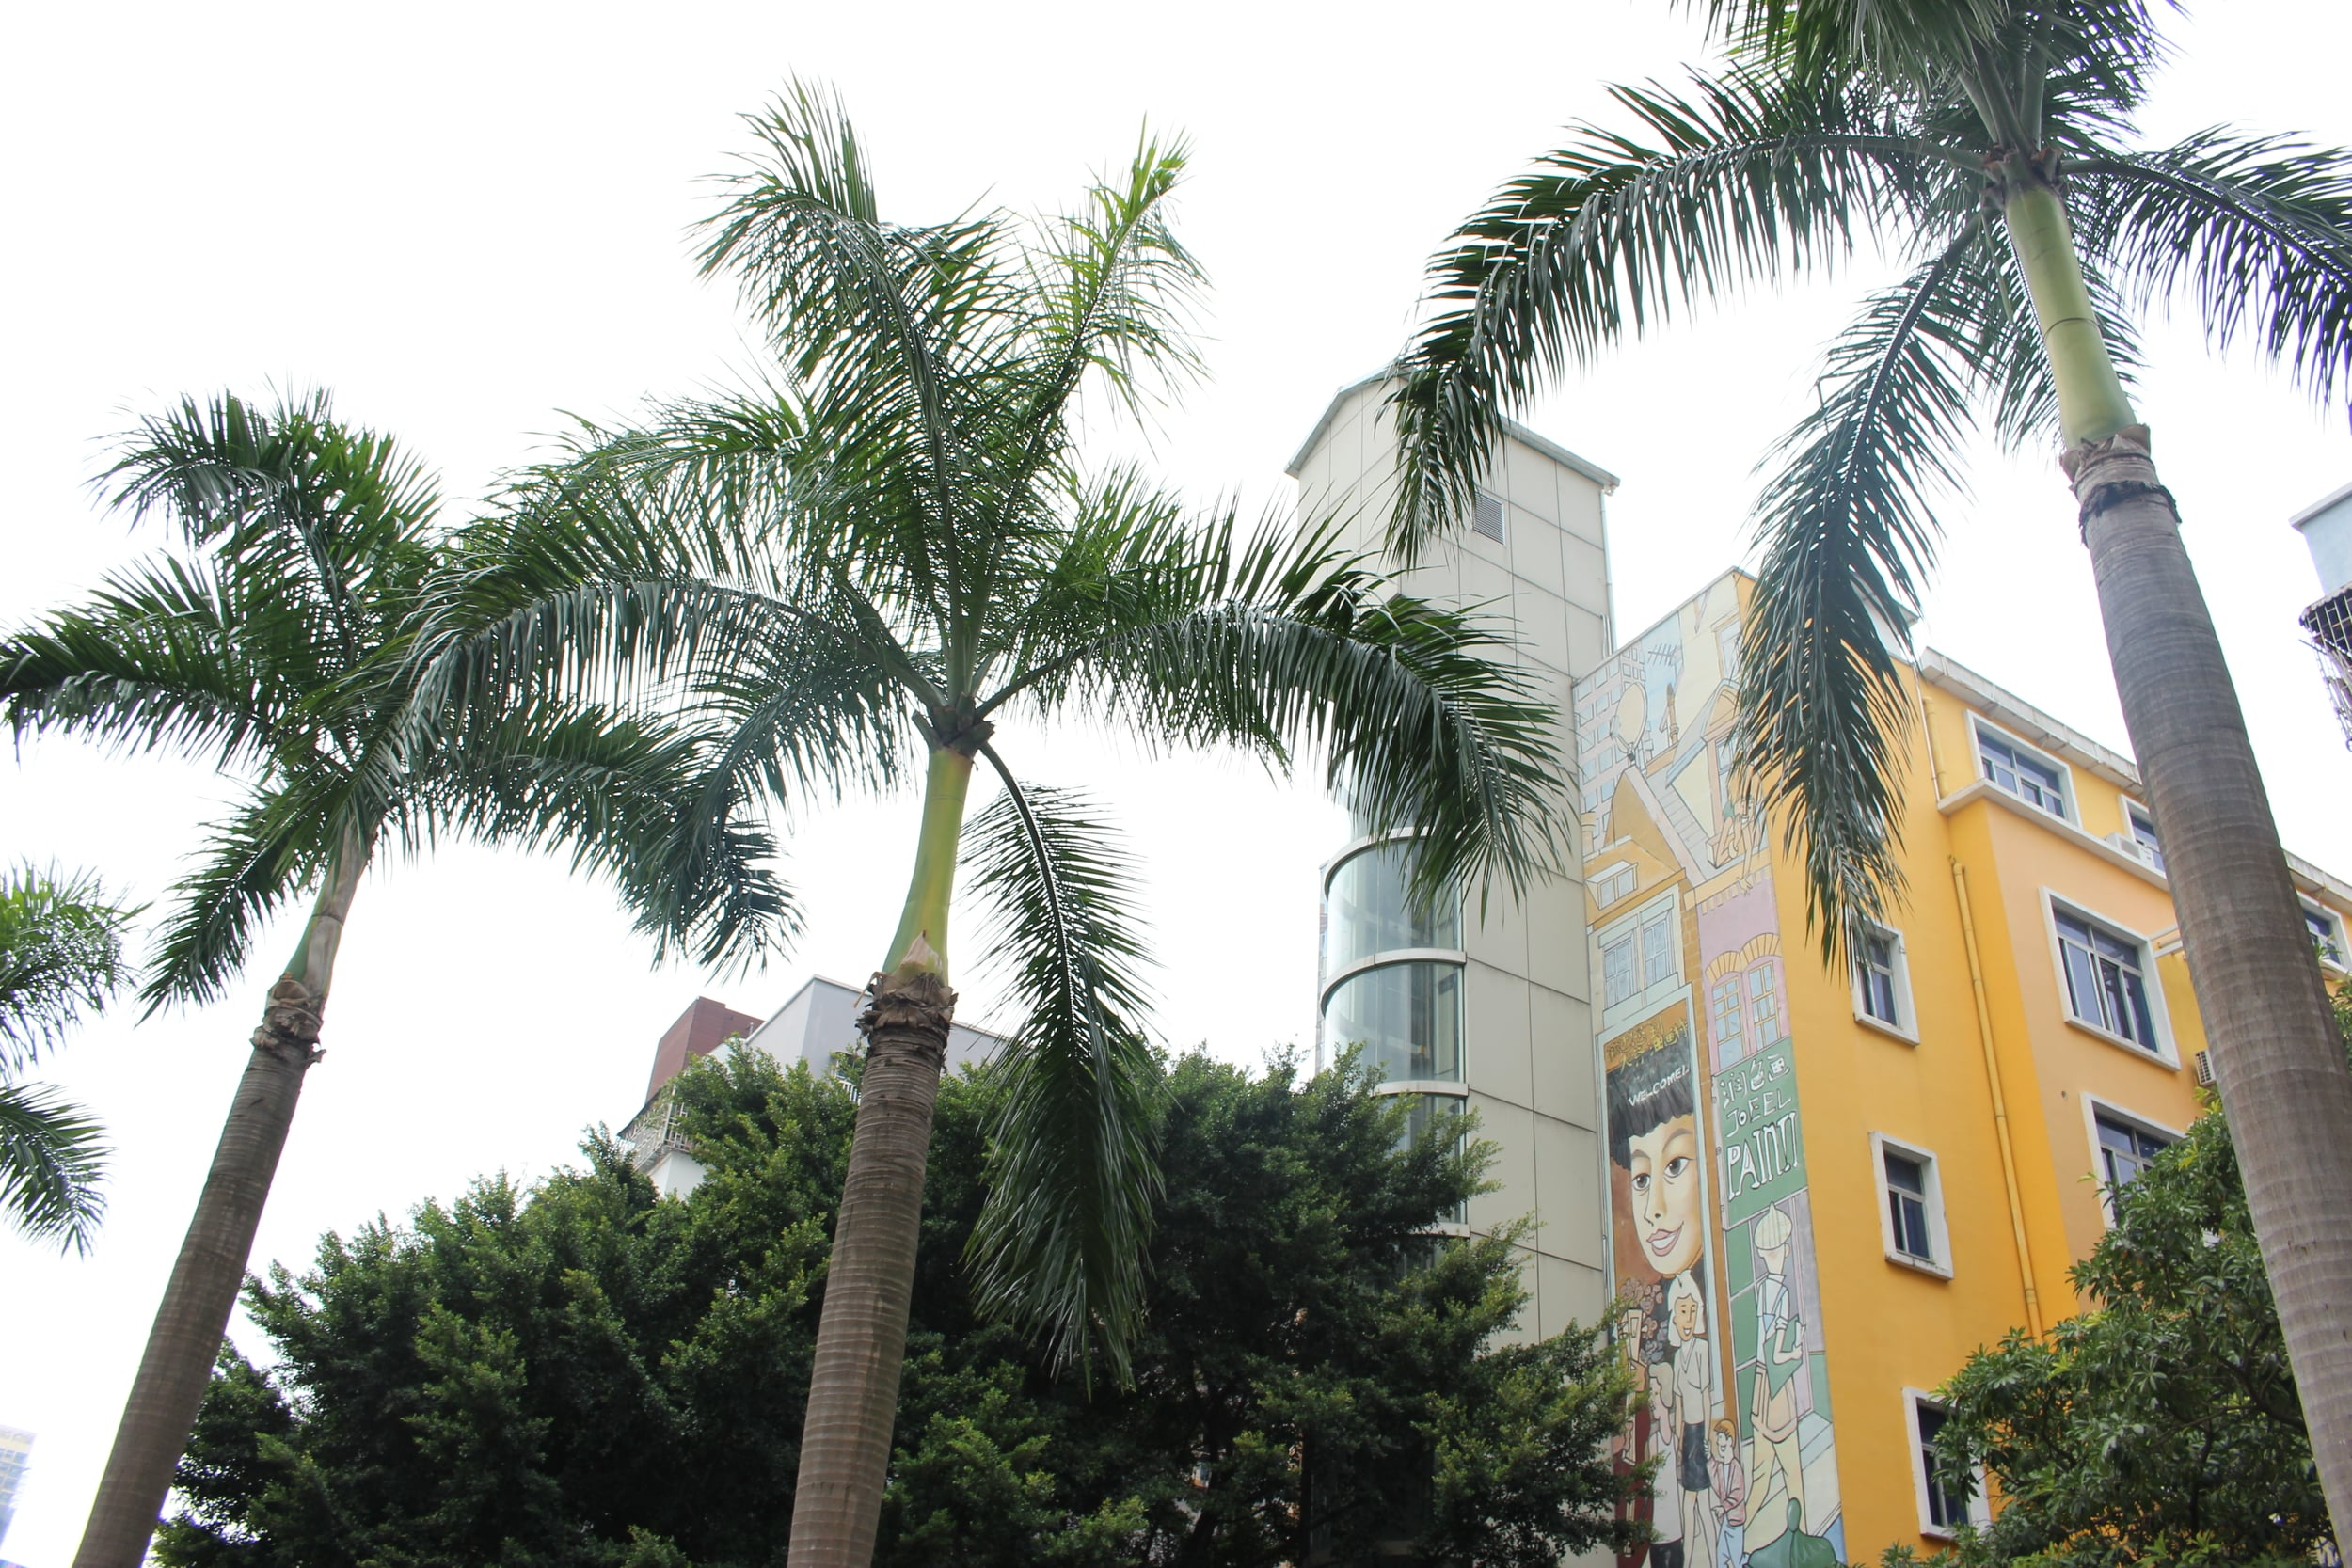 Lots of palm trees in south China